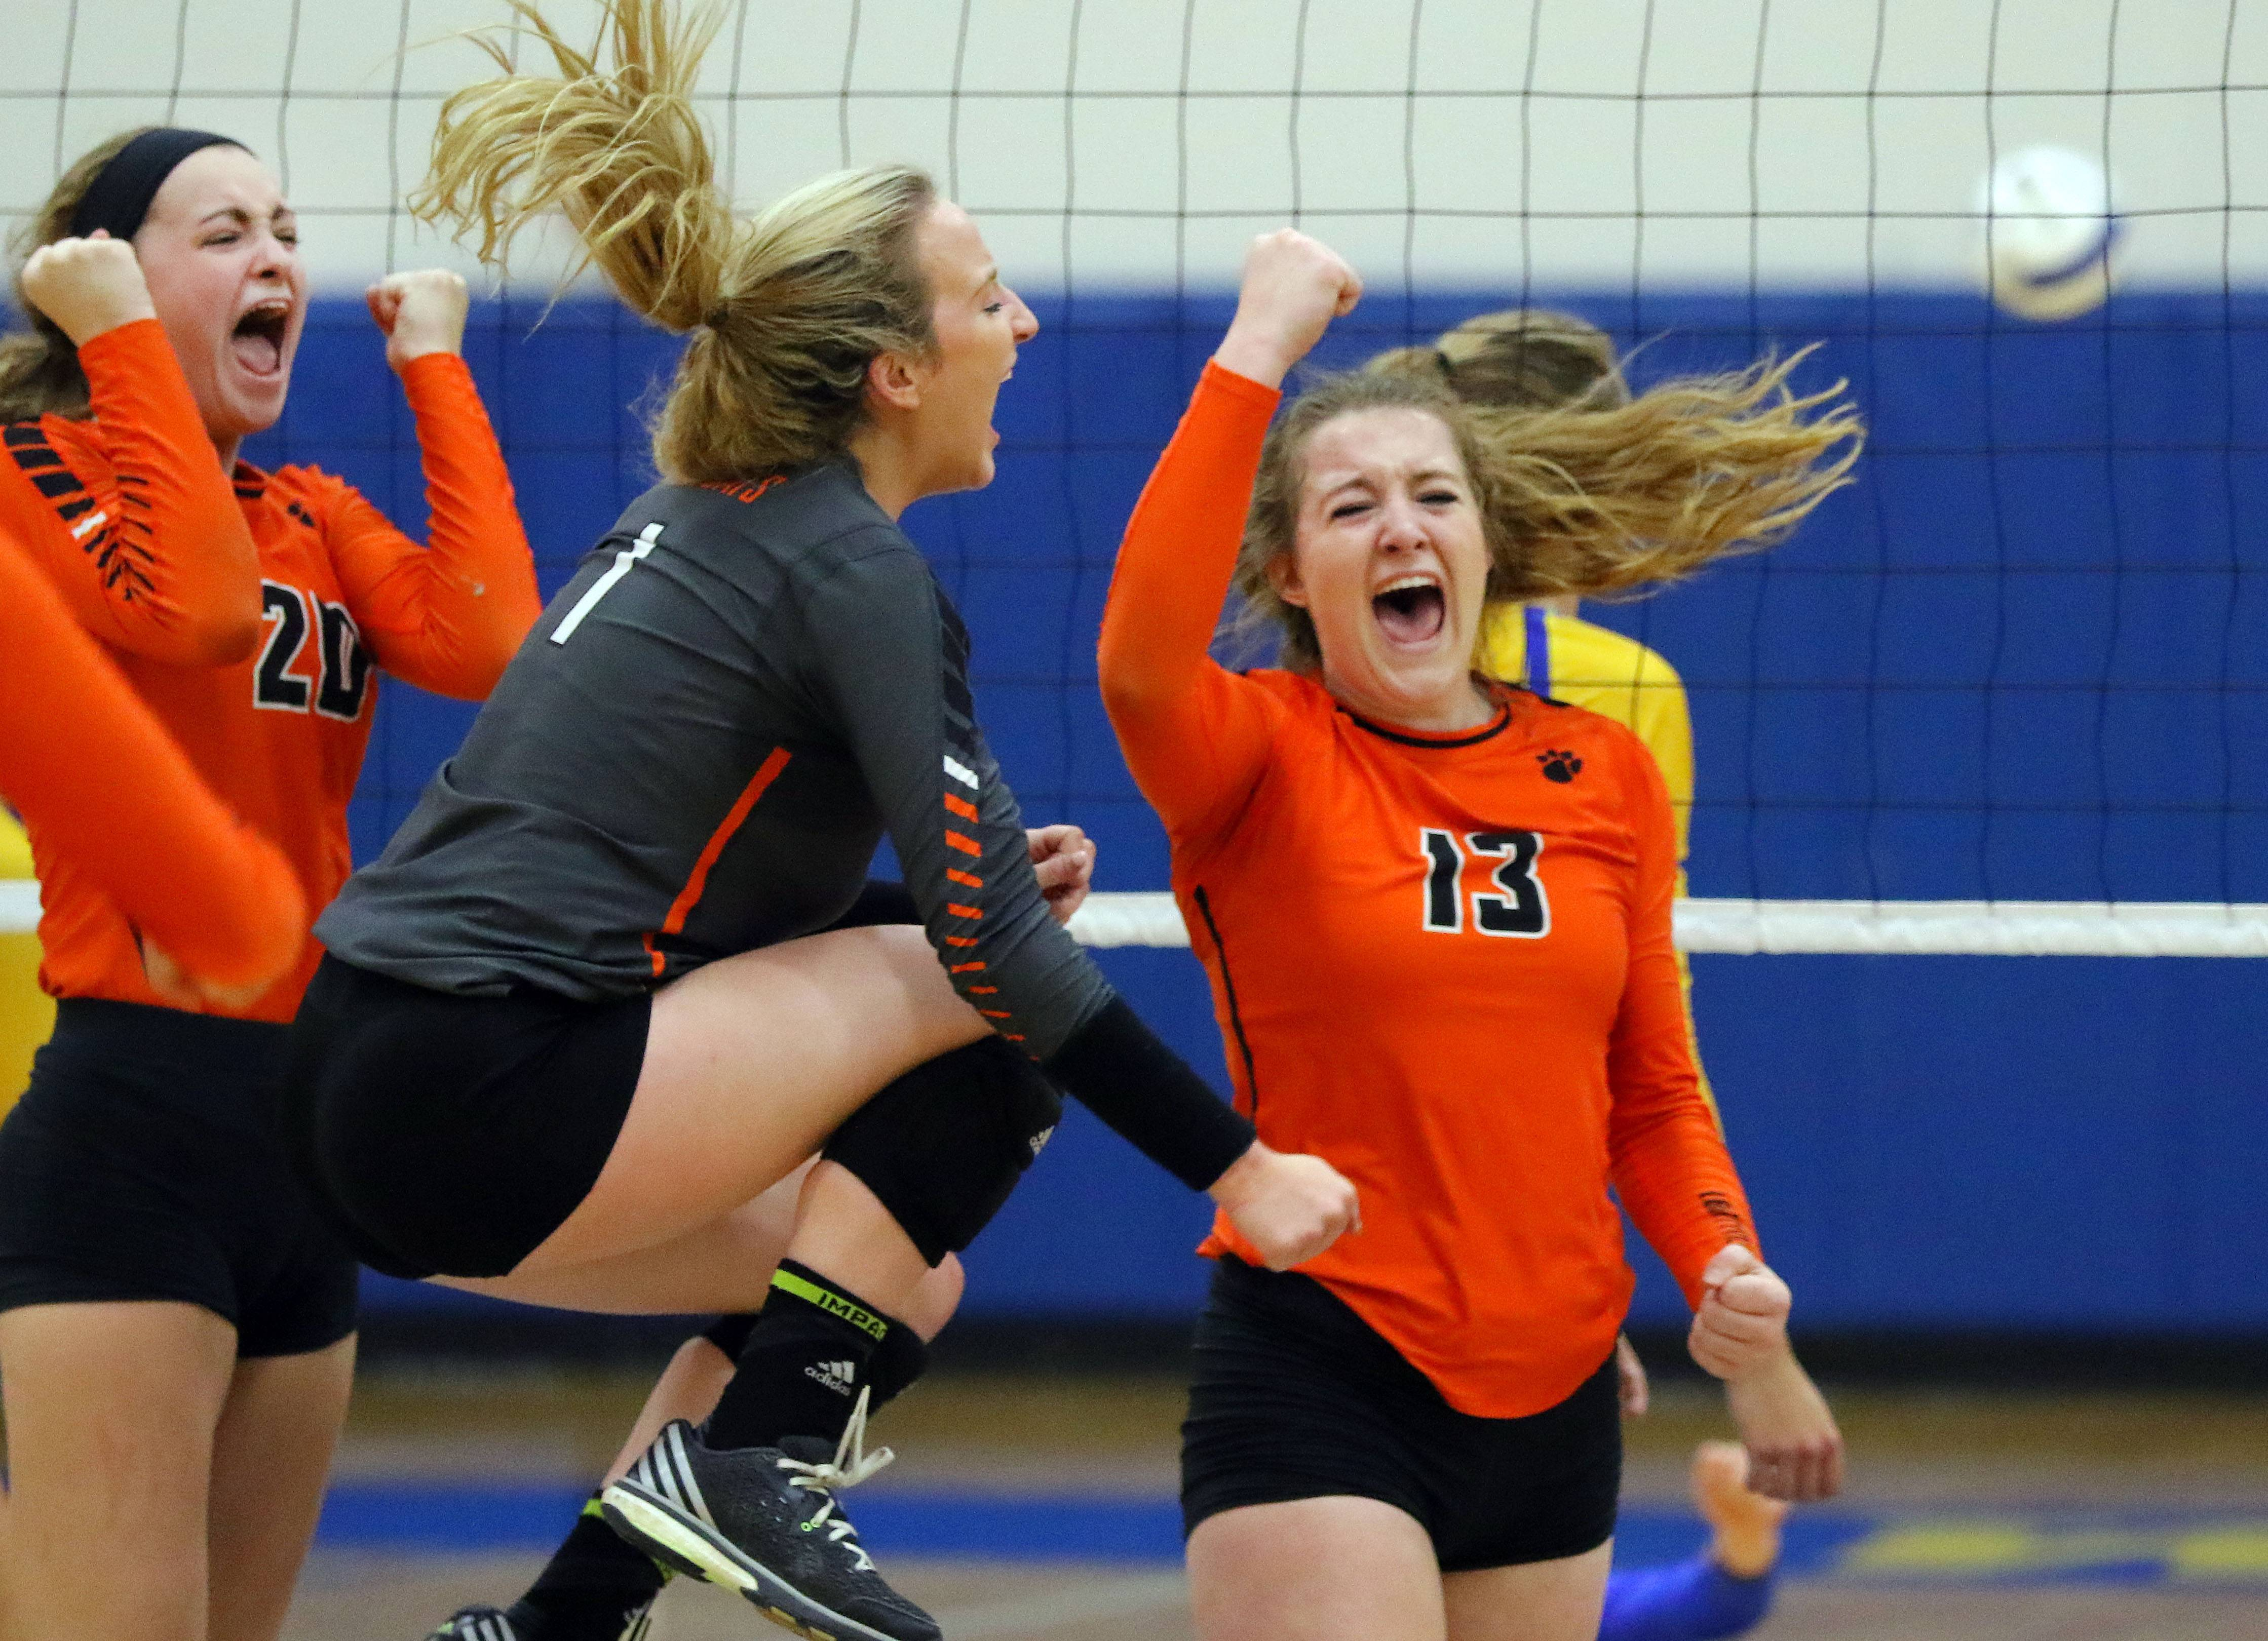 From left, Libertyville's Kellie Hopper, Morgan DeGregor and Amanda Reinhart celebrate after winning the first set Wednesday at Warren.